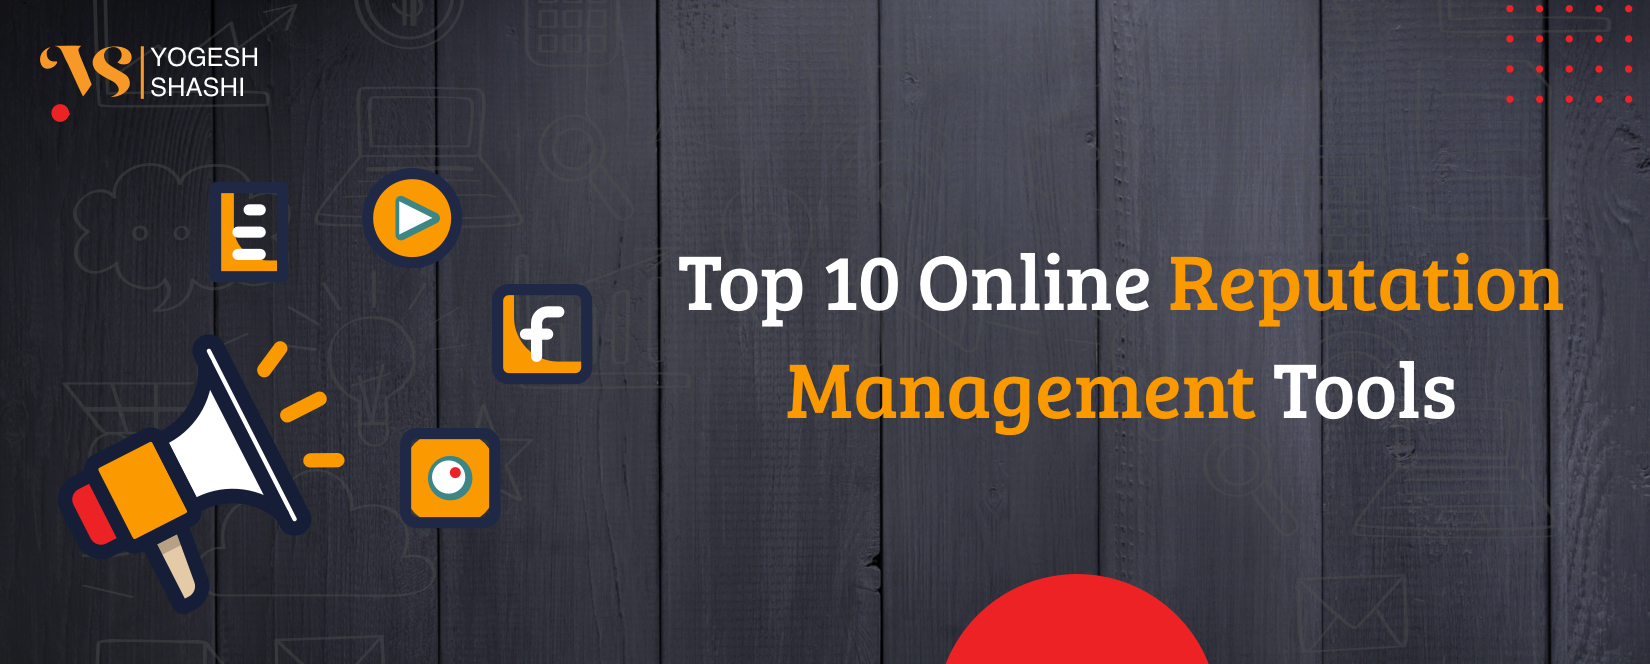 Top-10-Online-Reputation-Management-Tools